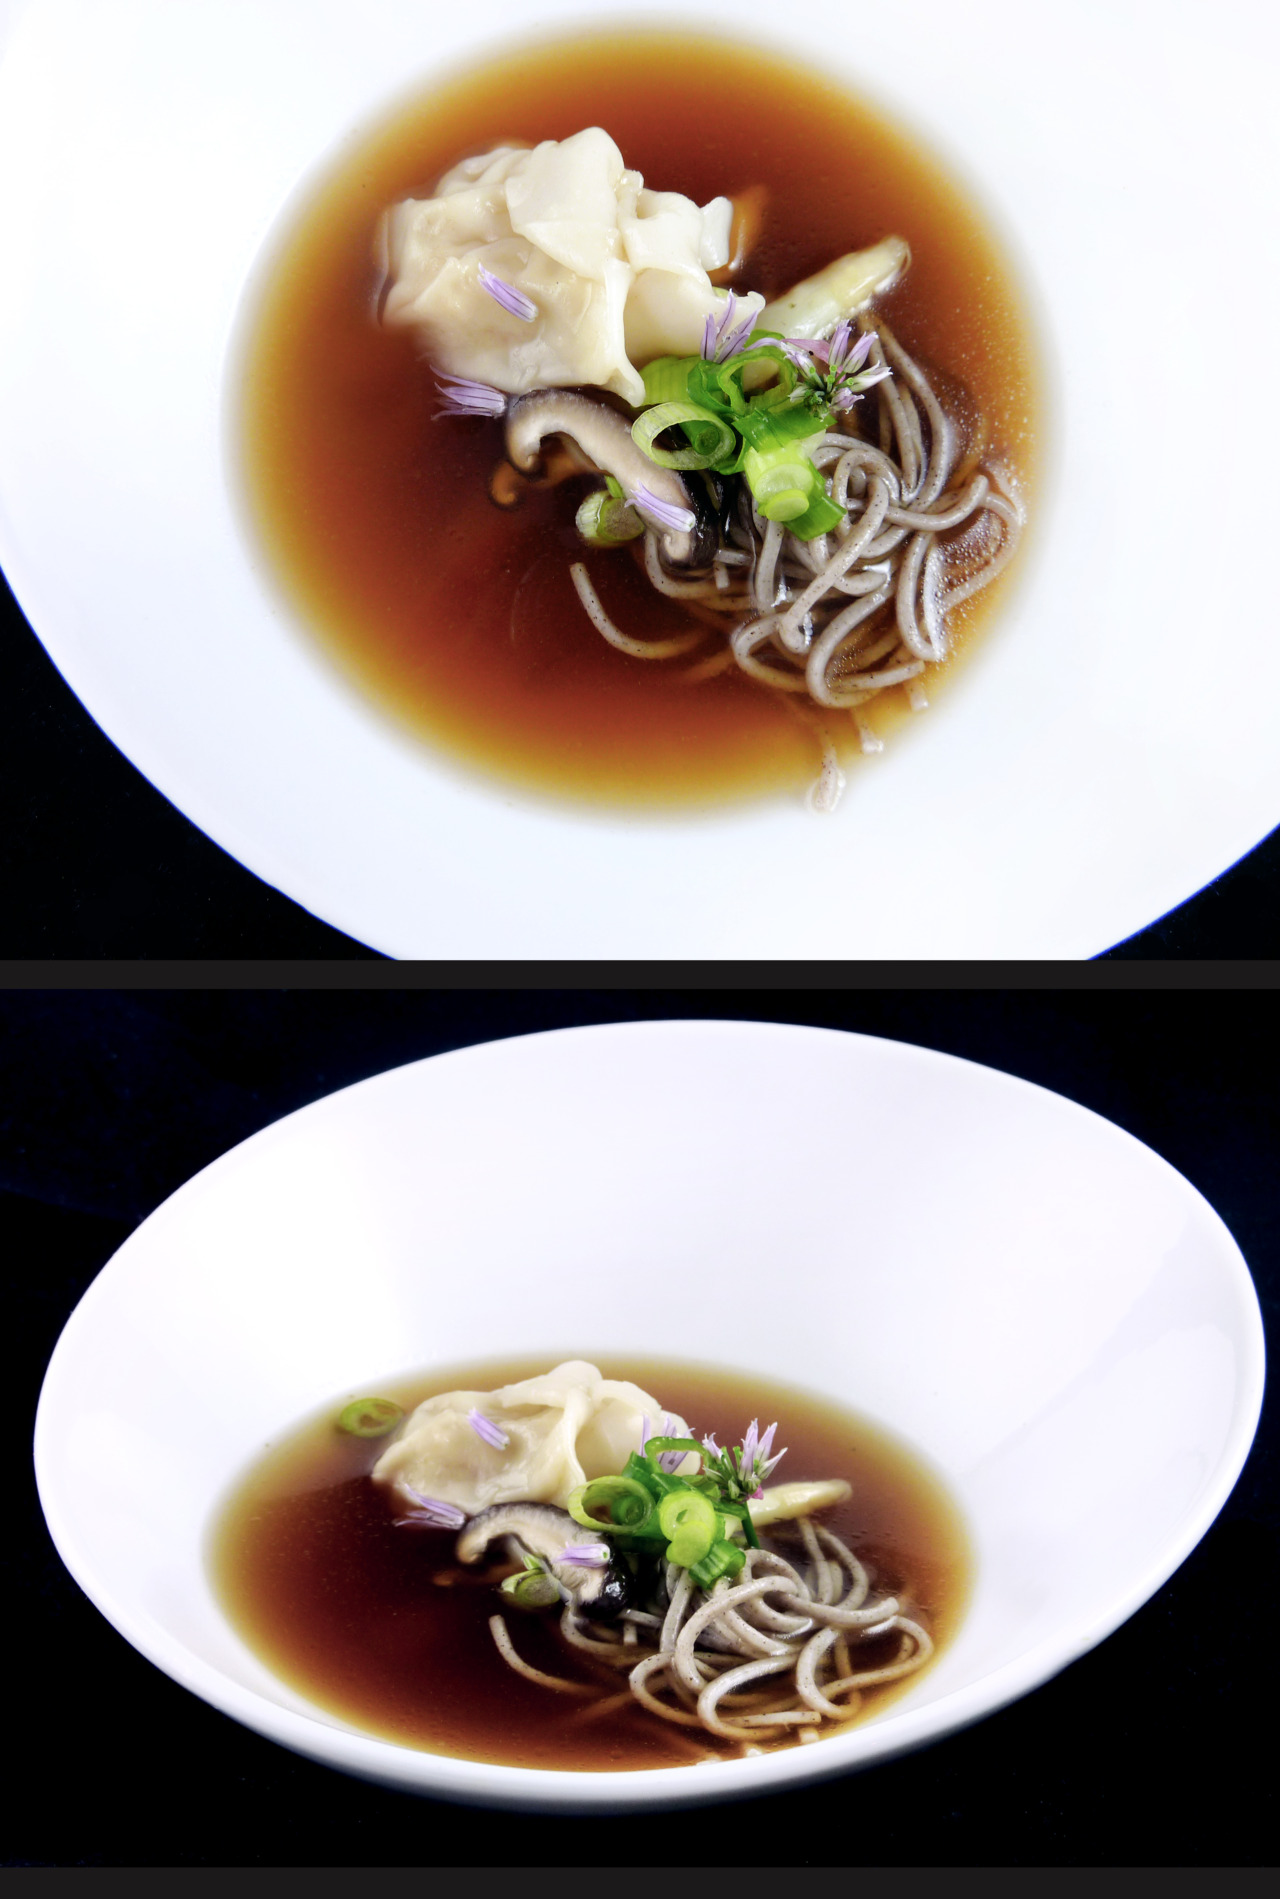 SOBA & DASHI CONSOMME   shrimp dumpling - white asparagus - shiitake mushrooms     The consomme is a fish fume of sea bass bones fortified with soy, white soy, kombu, and dashi.